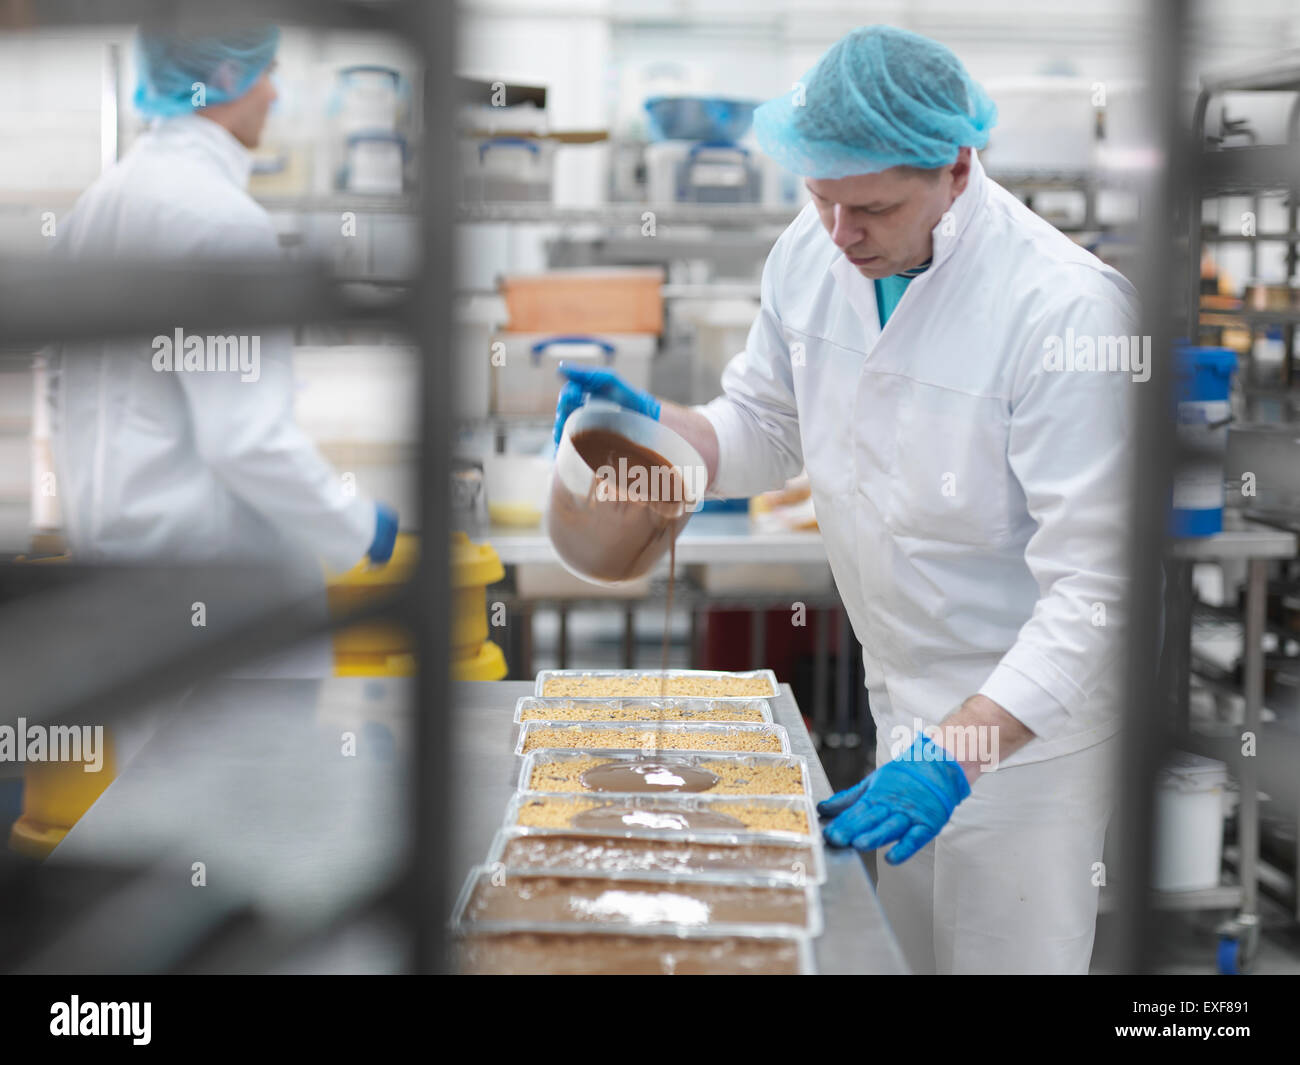 Male worker pouring chocolate in cake factory - Stock Image